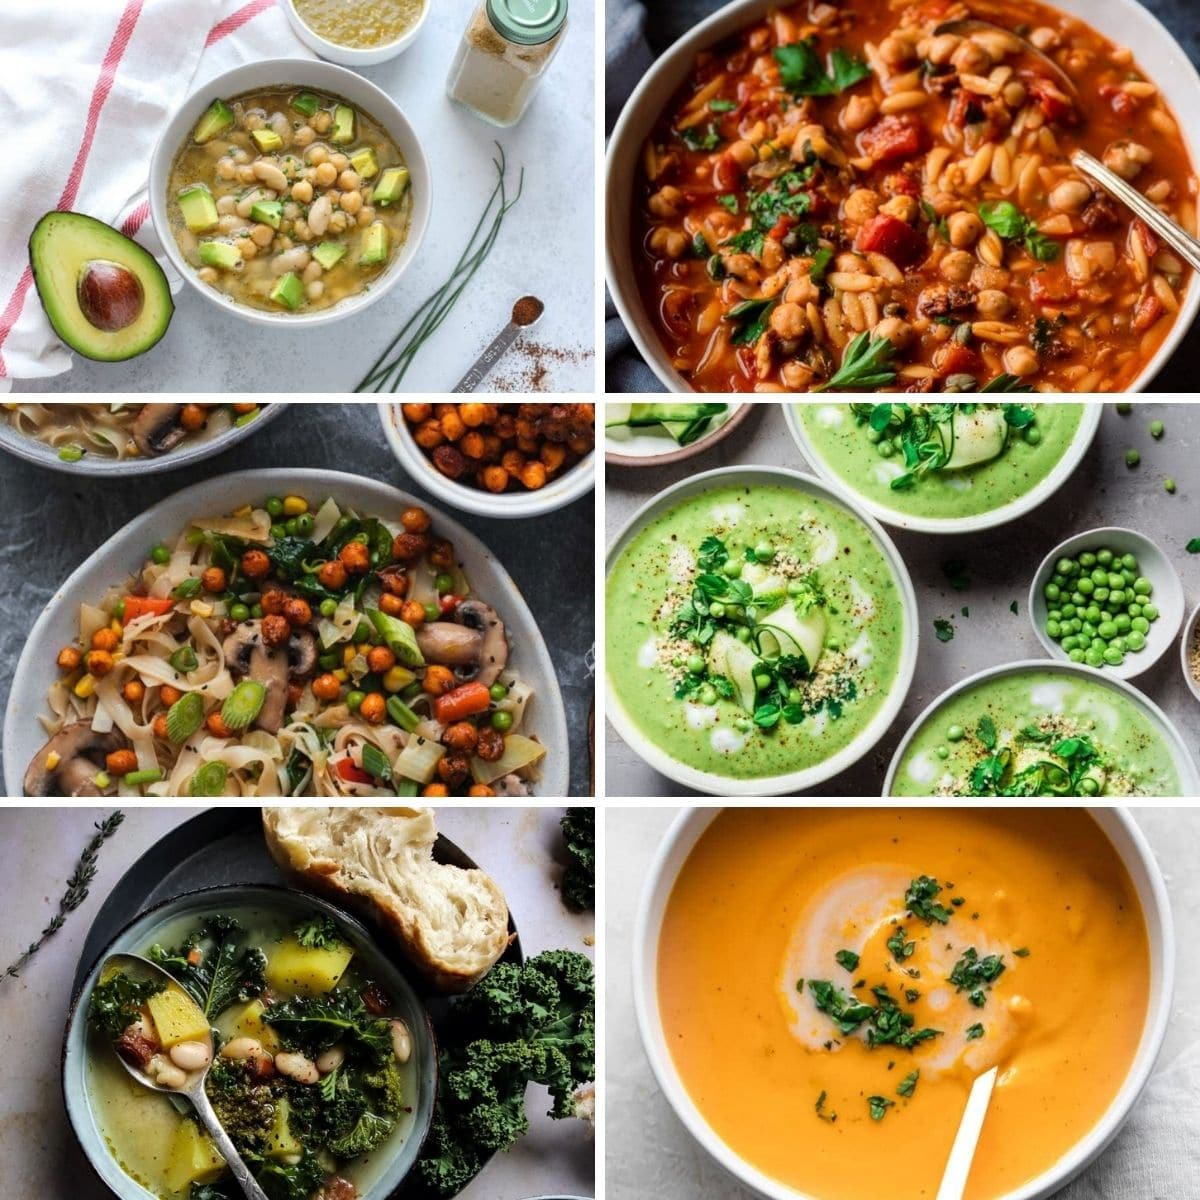 Collage photo featuring six vegan soups from the collection.